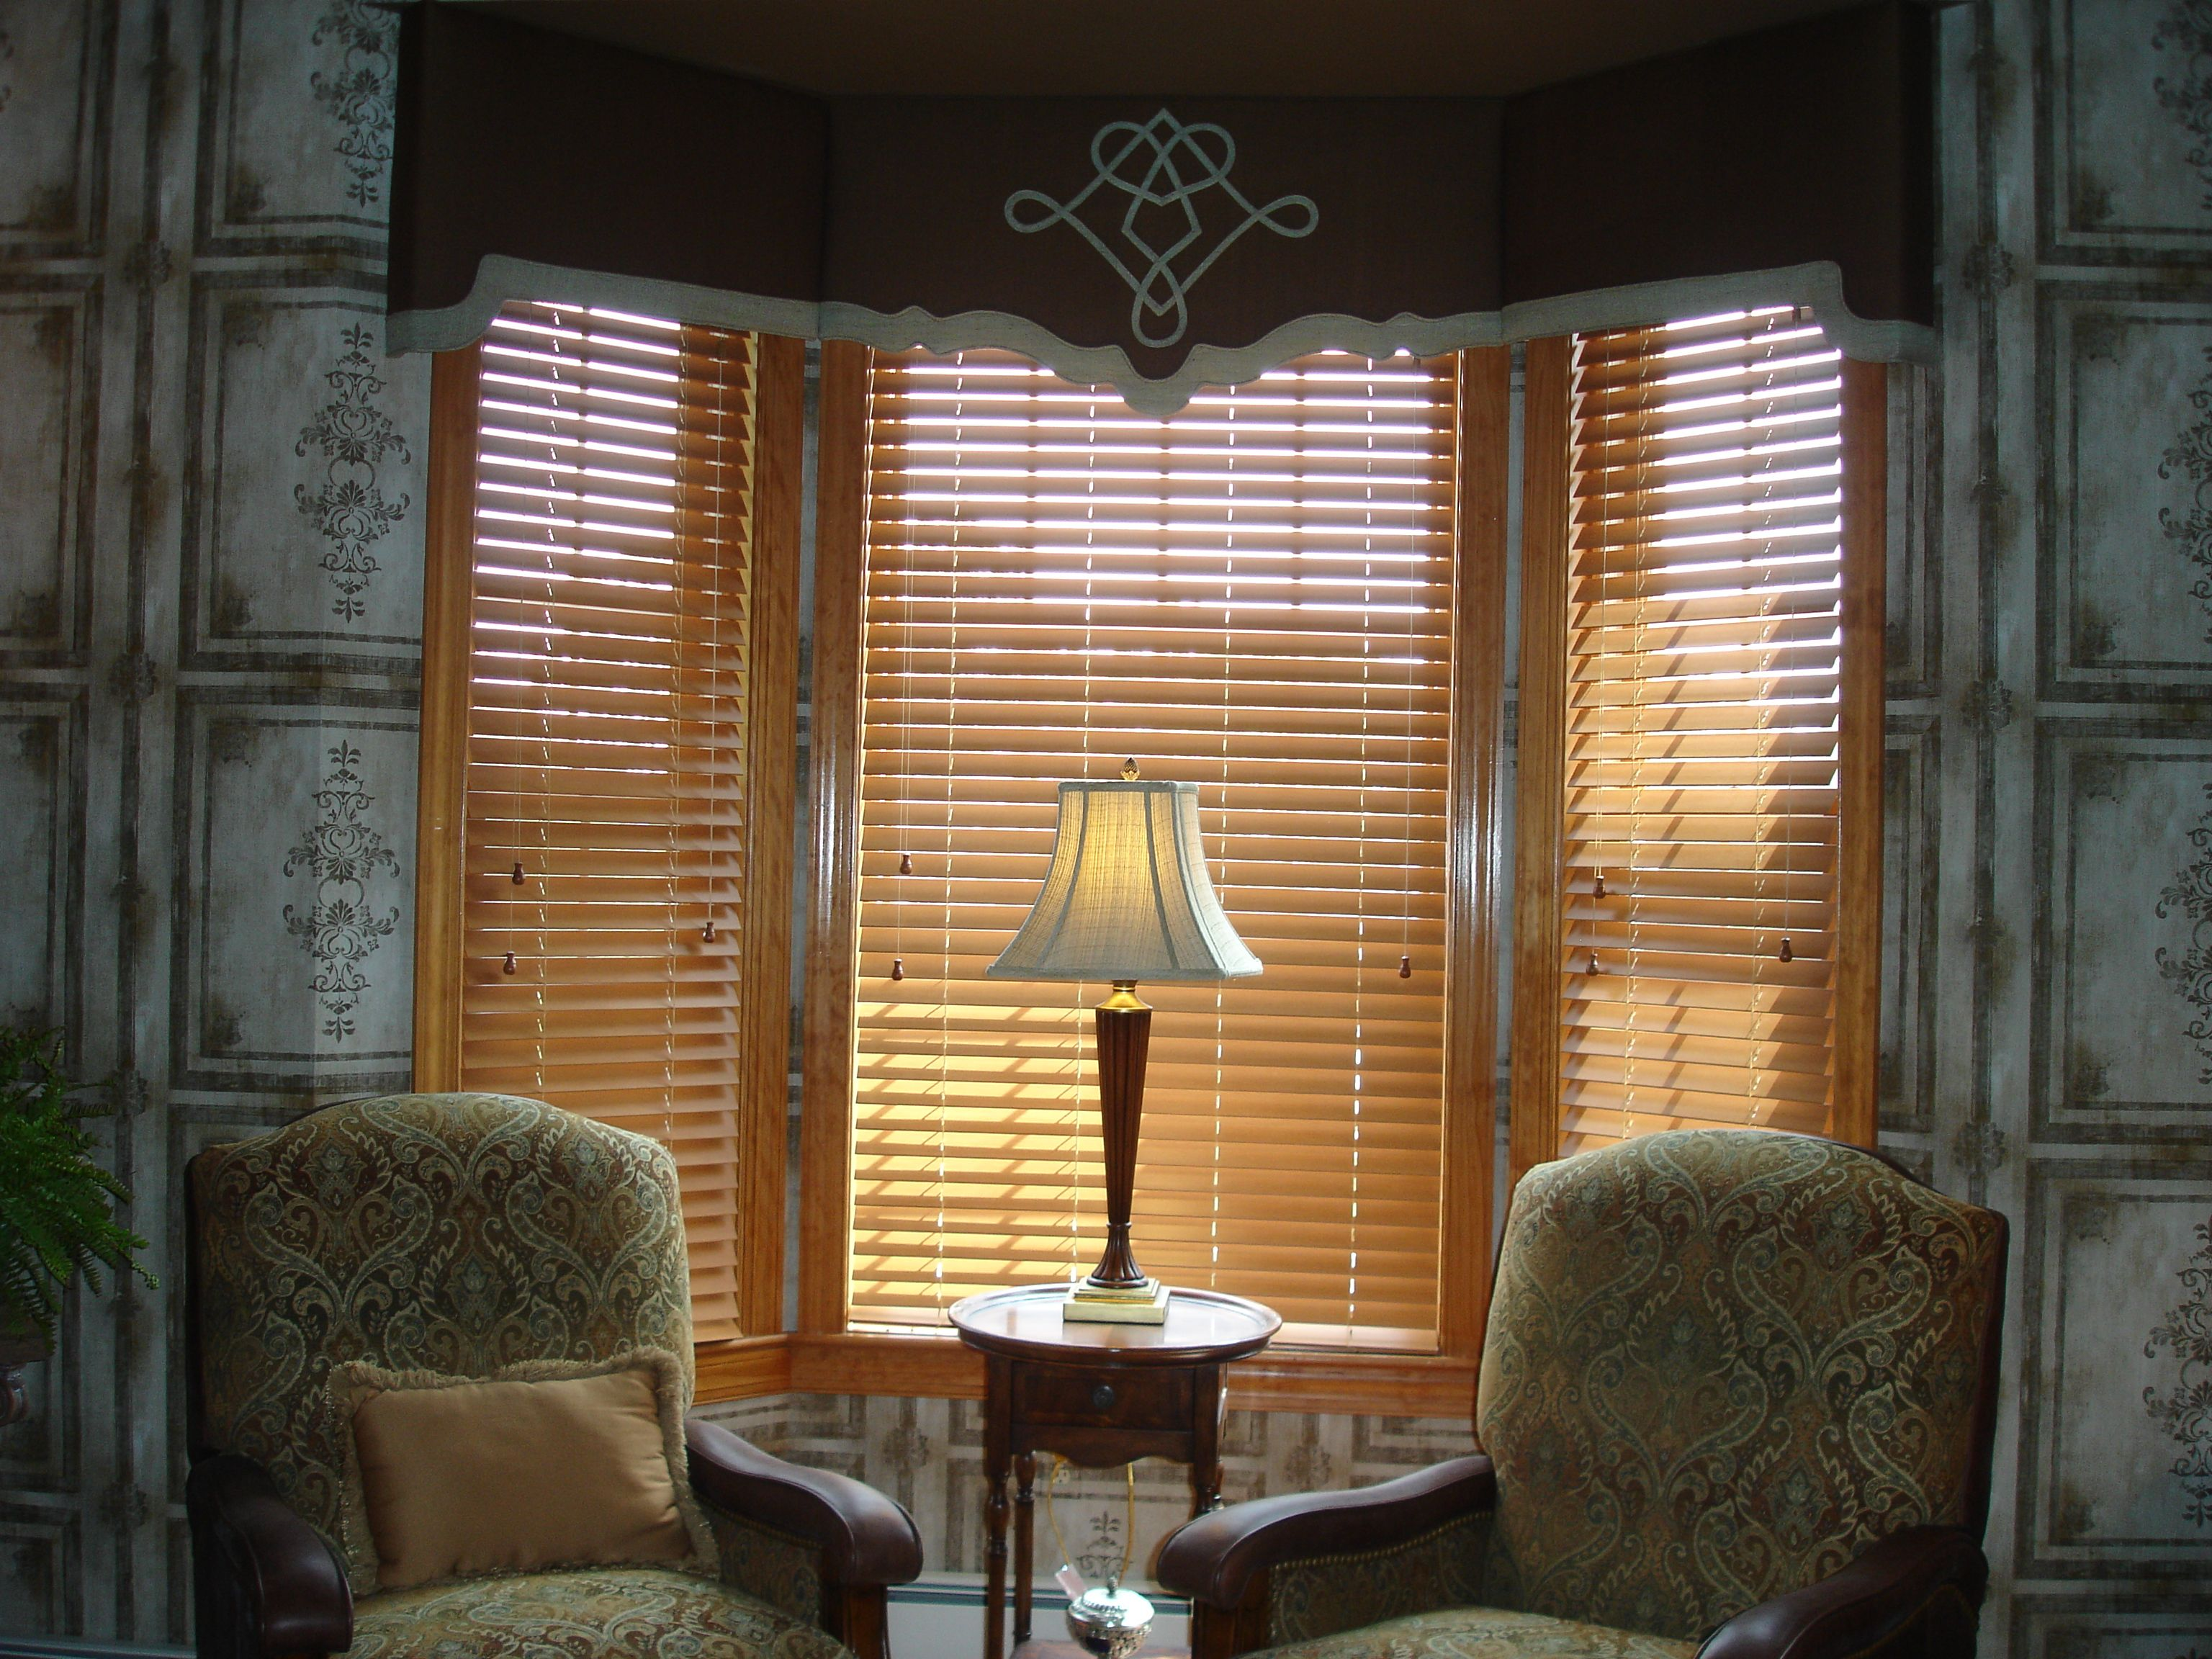 Bay window valances with design on middle panel window for Ideas for bay window treatments